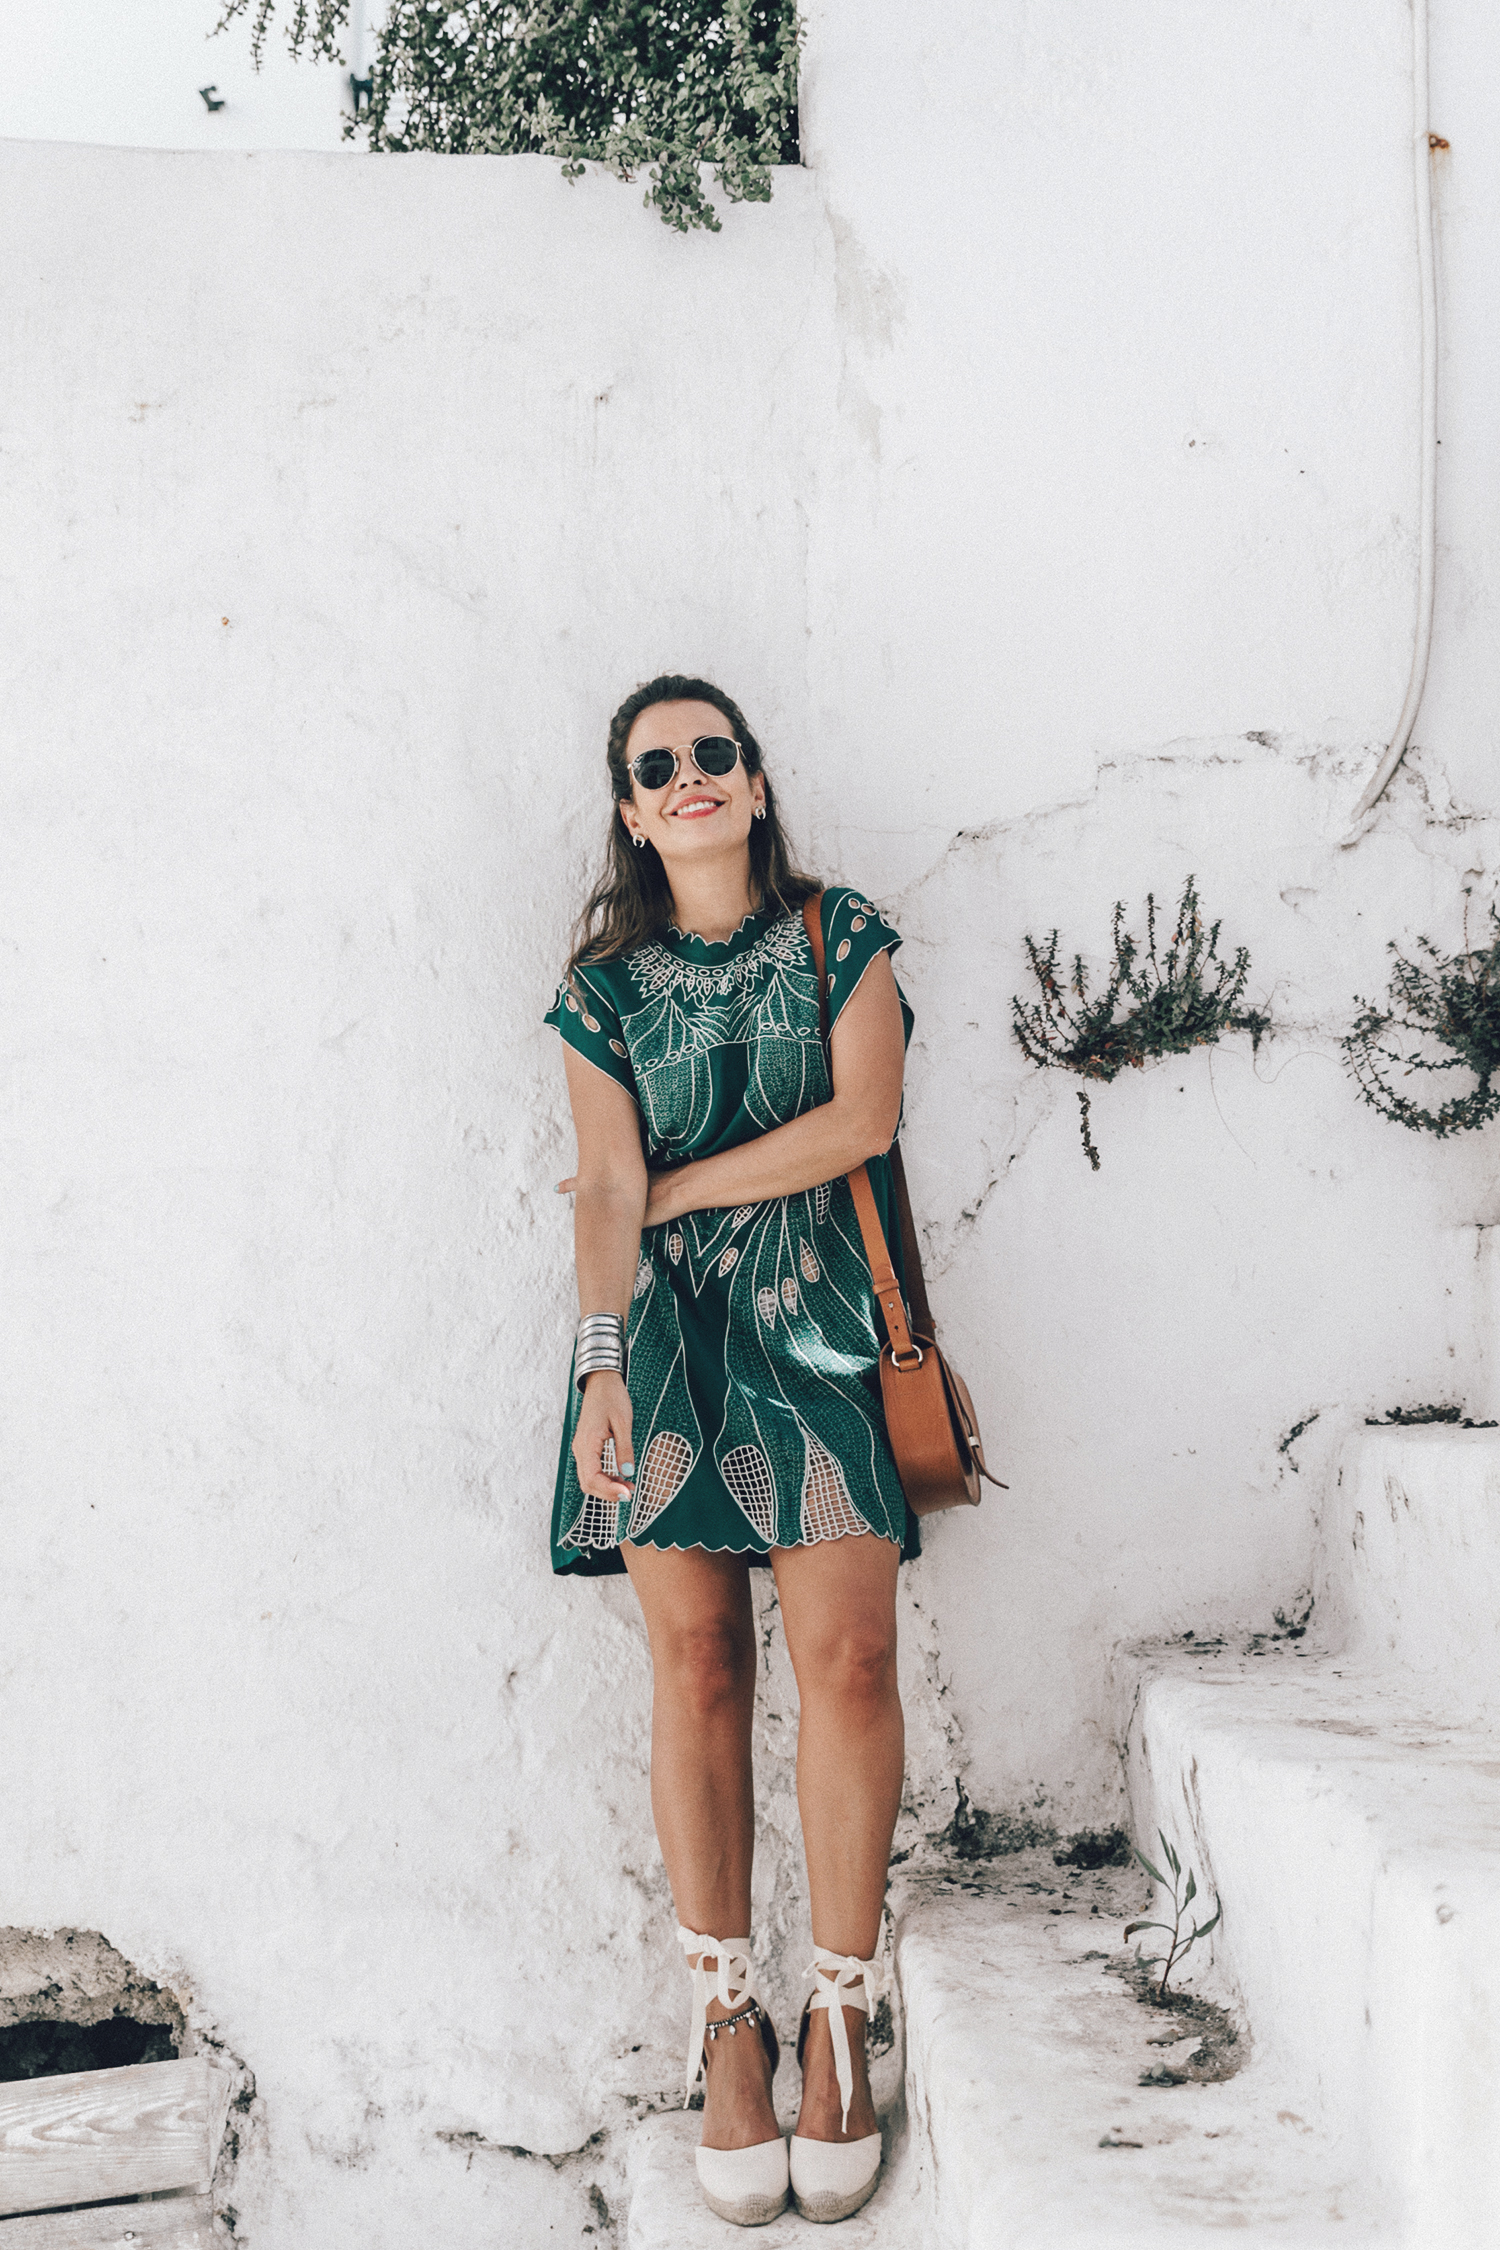 Tularosa_Dress-Soludos_Escapes-Soludos_Espadrilles-Sezane_Bag-Leather_Crossbody_Bag-Boho_Outfit-Look-Ray_Ban-Street_Style-Mykonos-Greece-Collage_Vintage-18-Recuperado